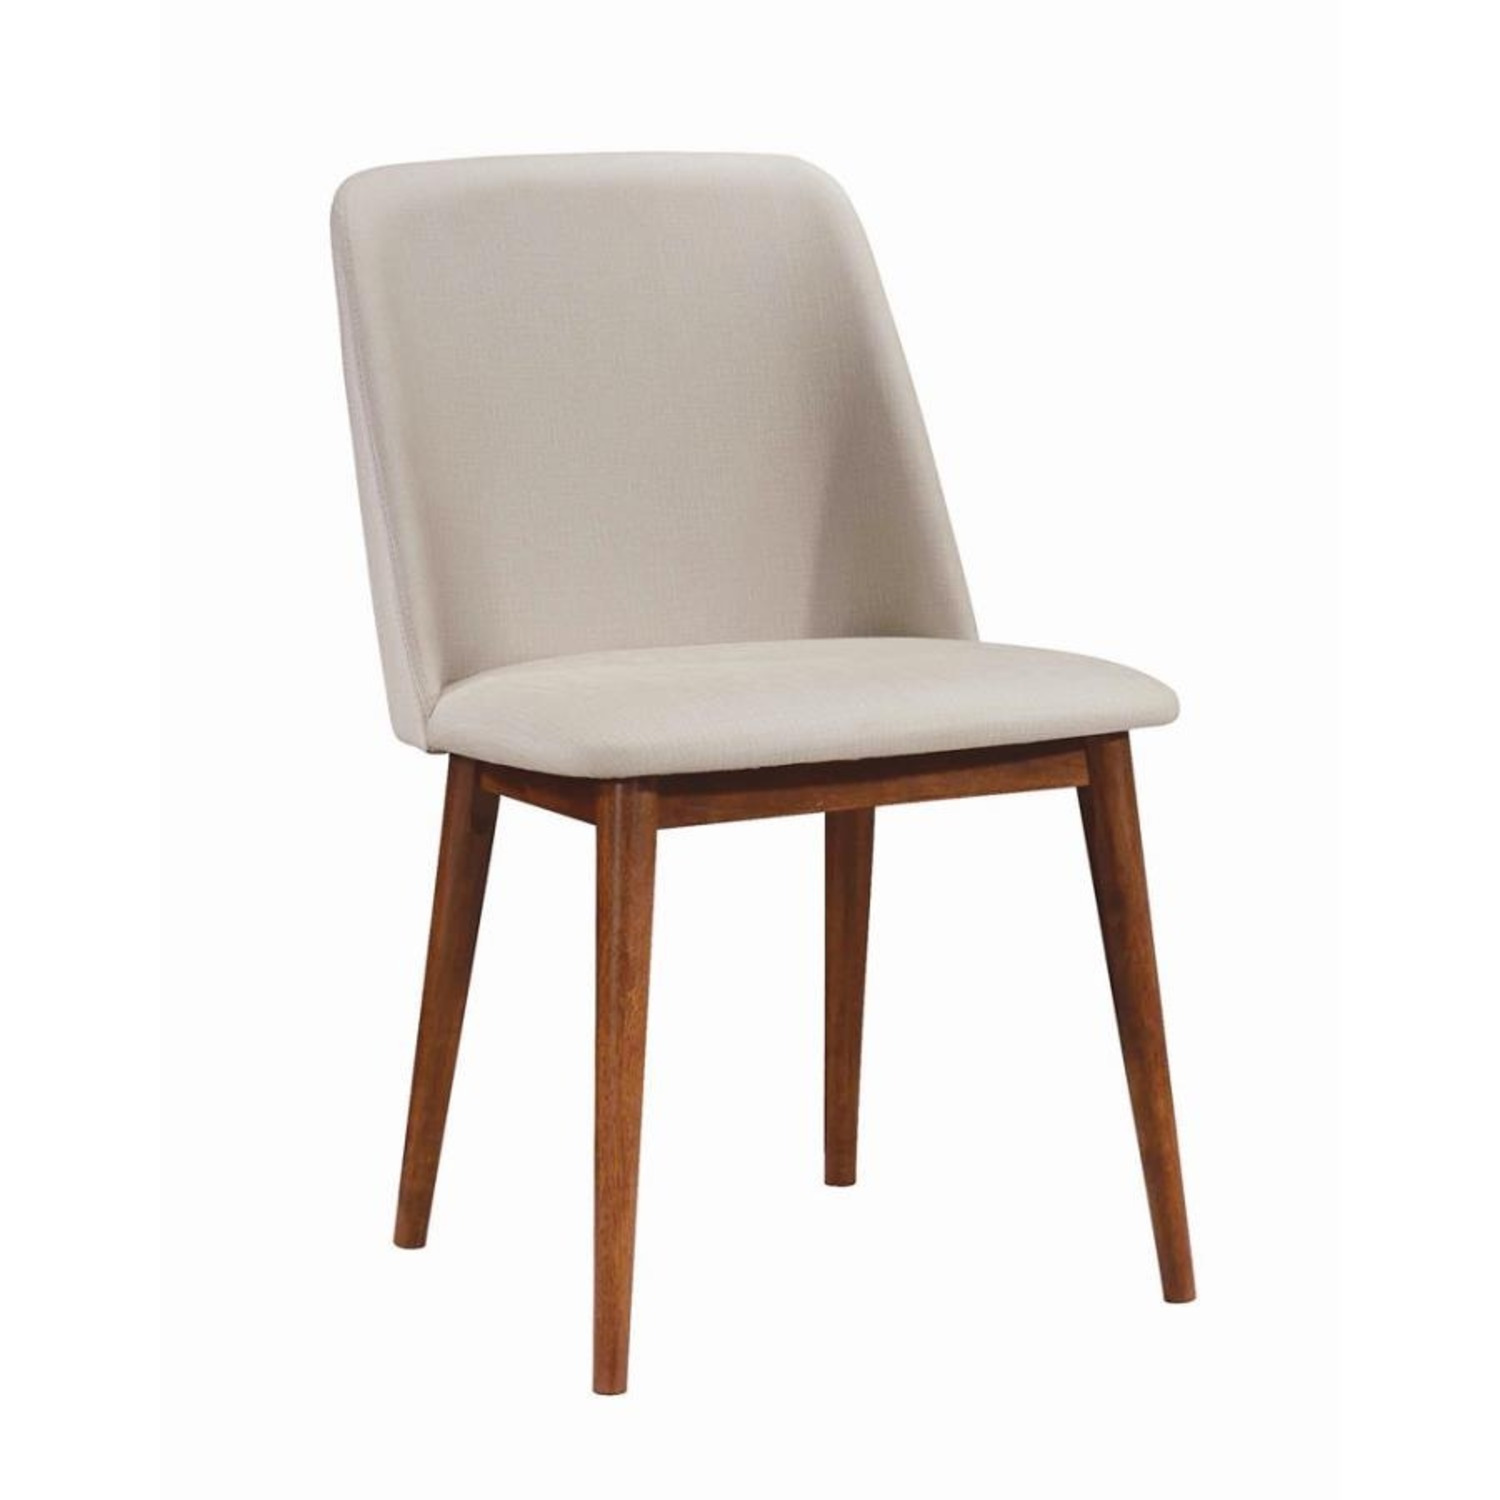 Modern Side Chair In Light Grey Fabric Finish - image-0